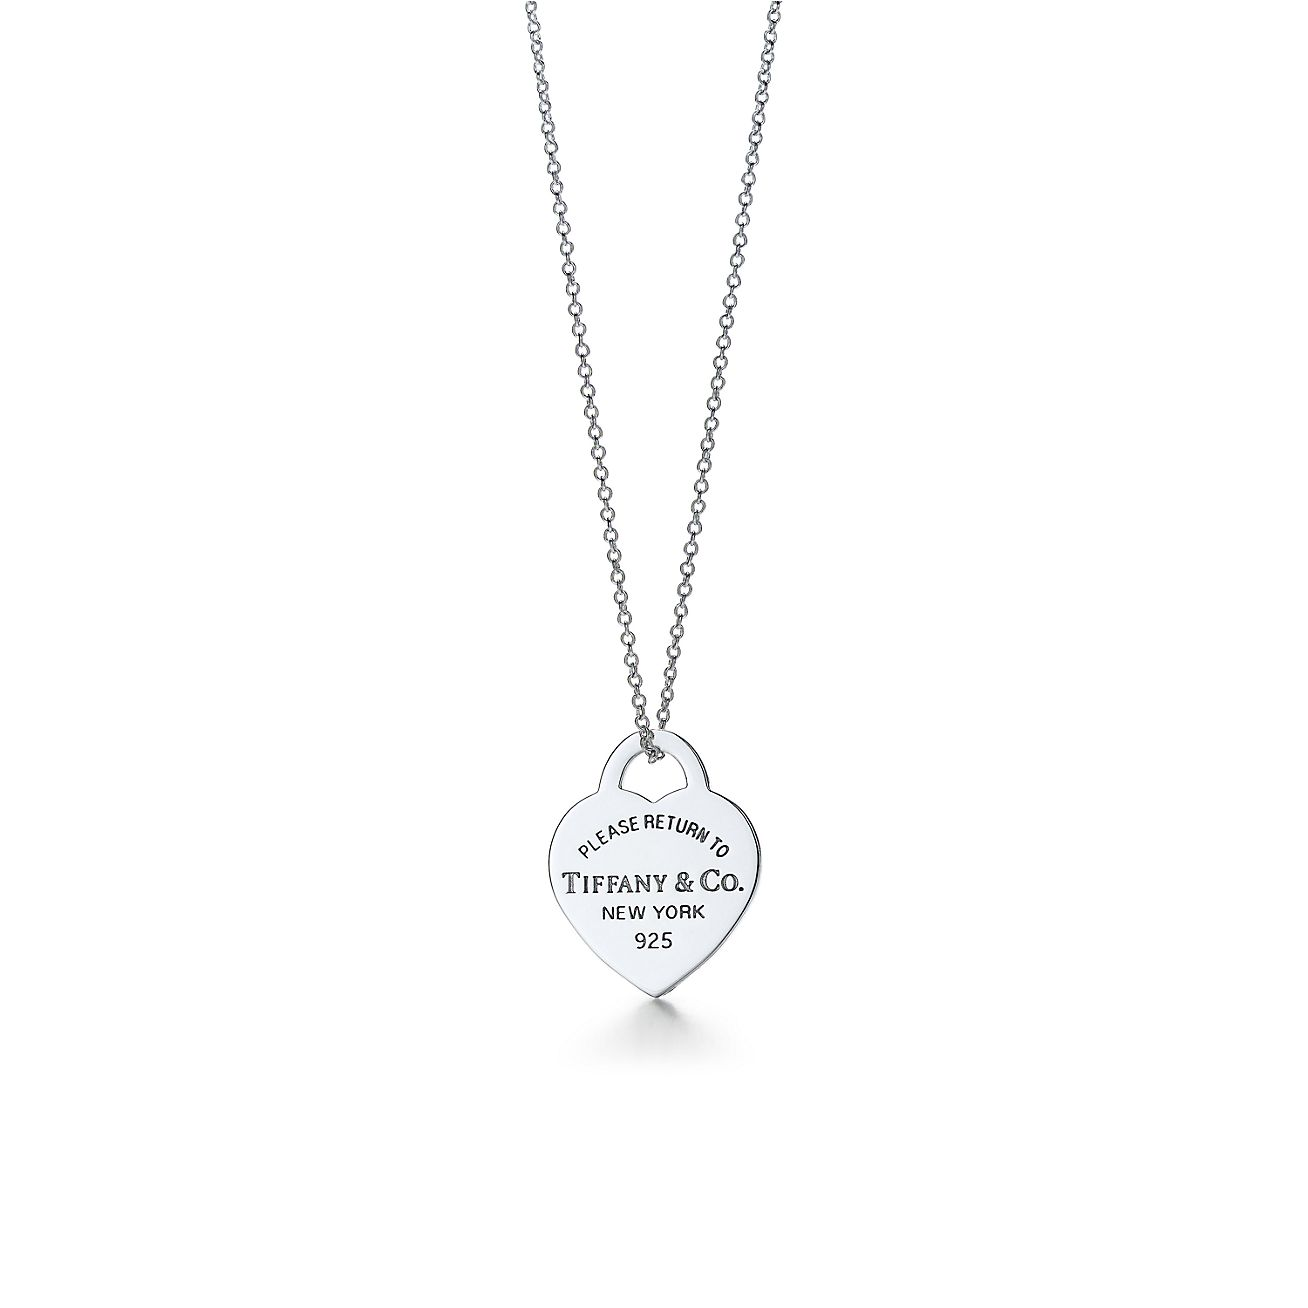 Return to Tiffany heart tag pendant in sterling silver, small - Size 18 in Tiffany & Co.